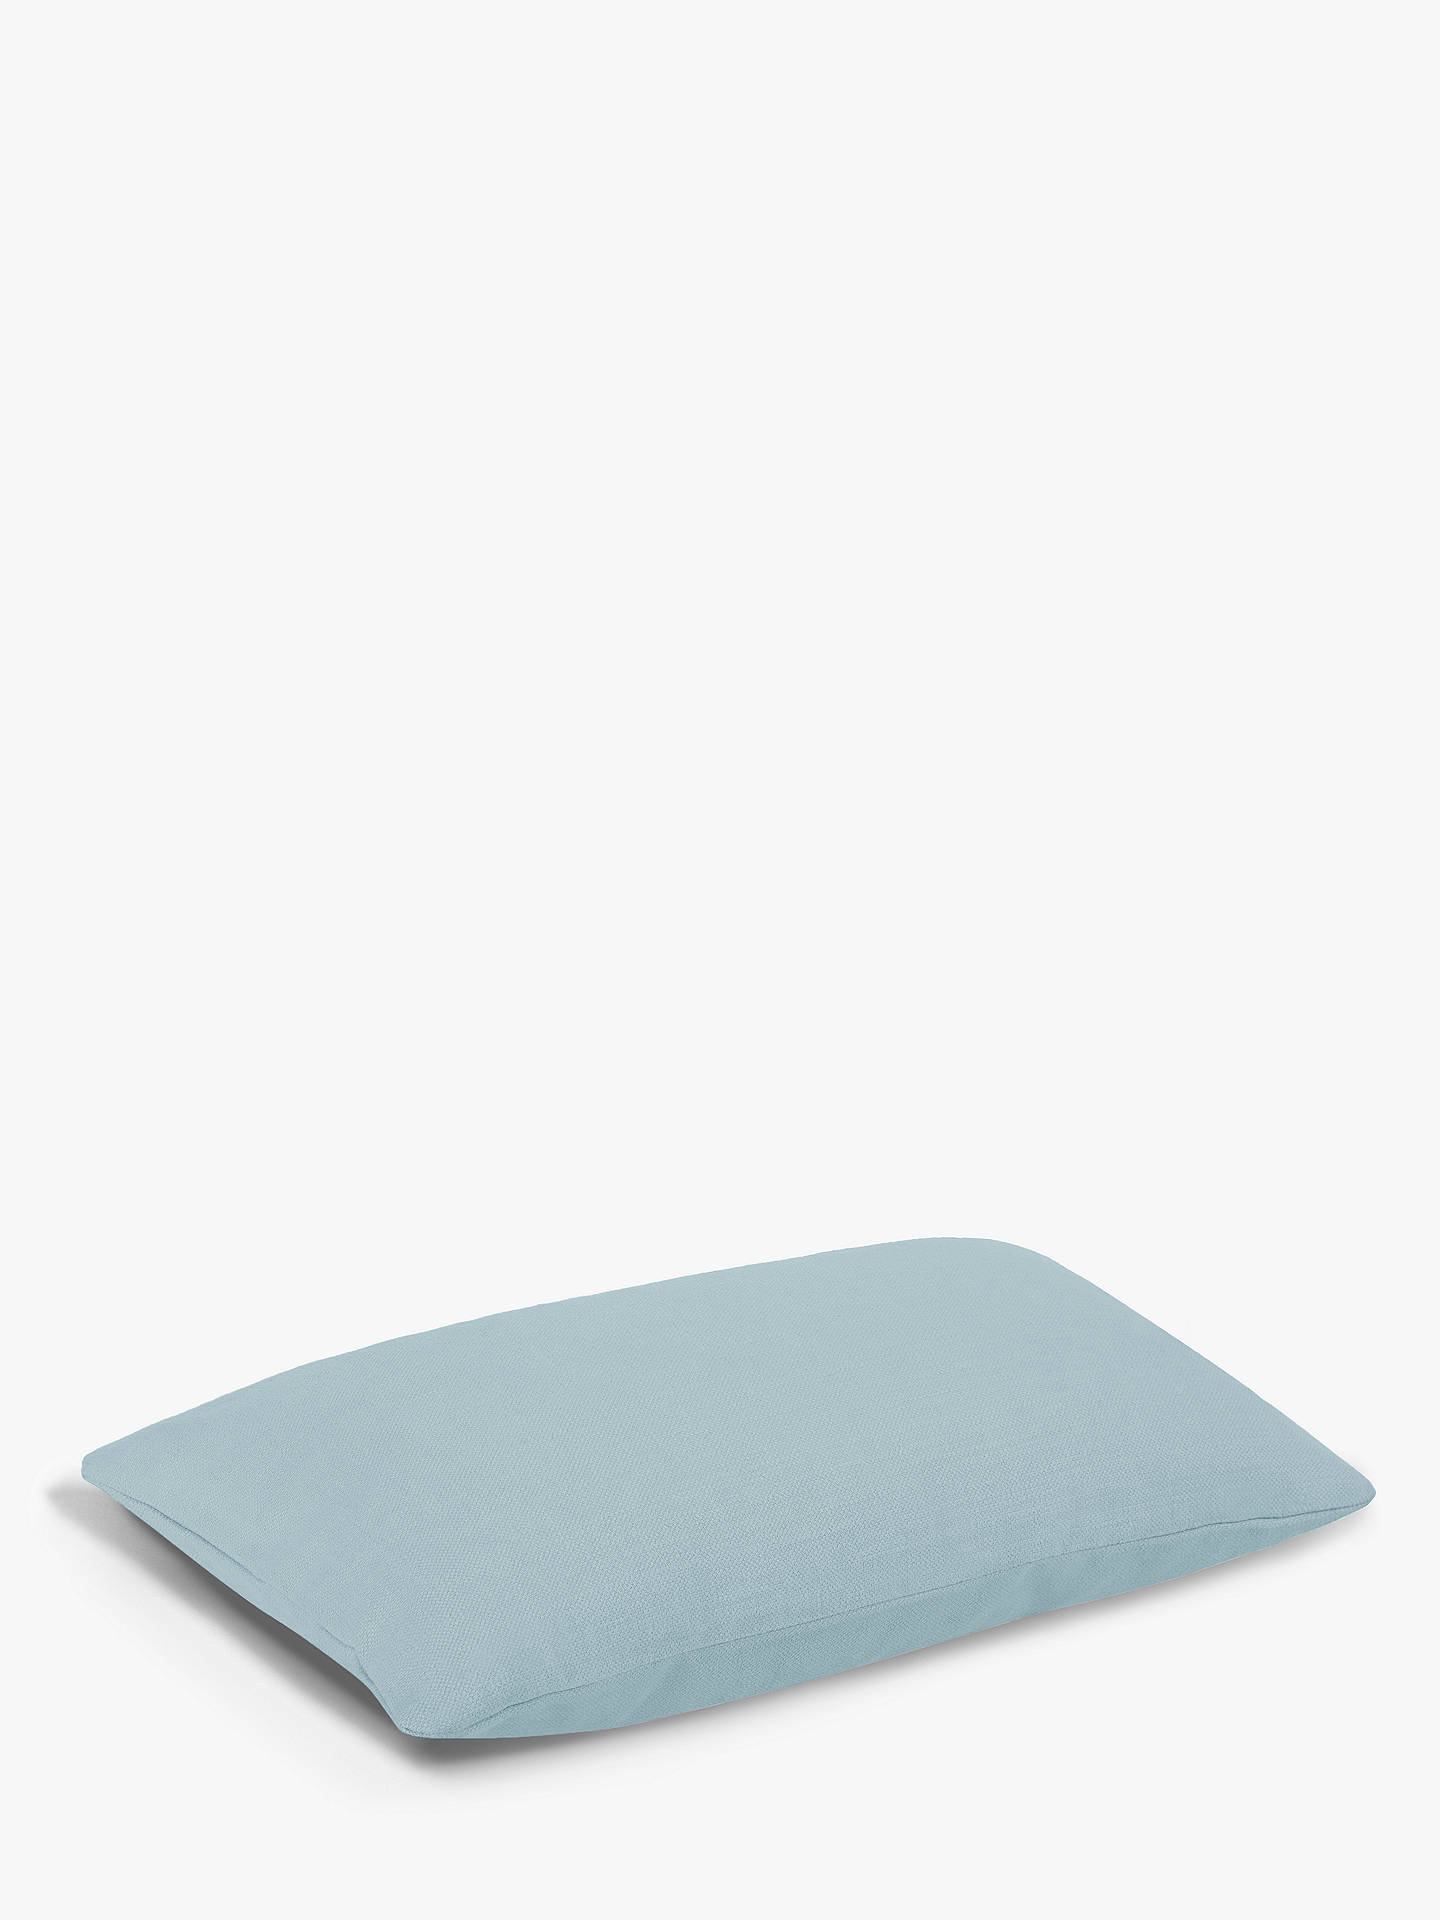 Buy Rectangular Stretch Scatter Cushion by Loaf at John Lewis, Clever Softie Powder Blue Online at johnlewis.com